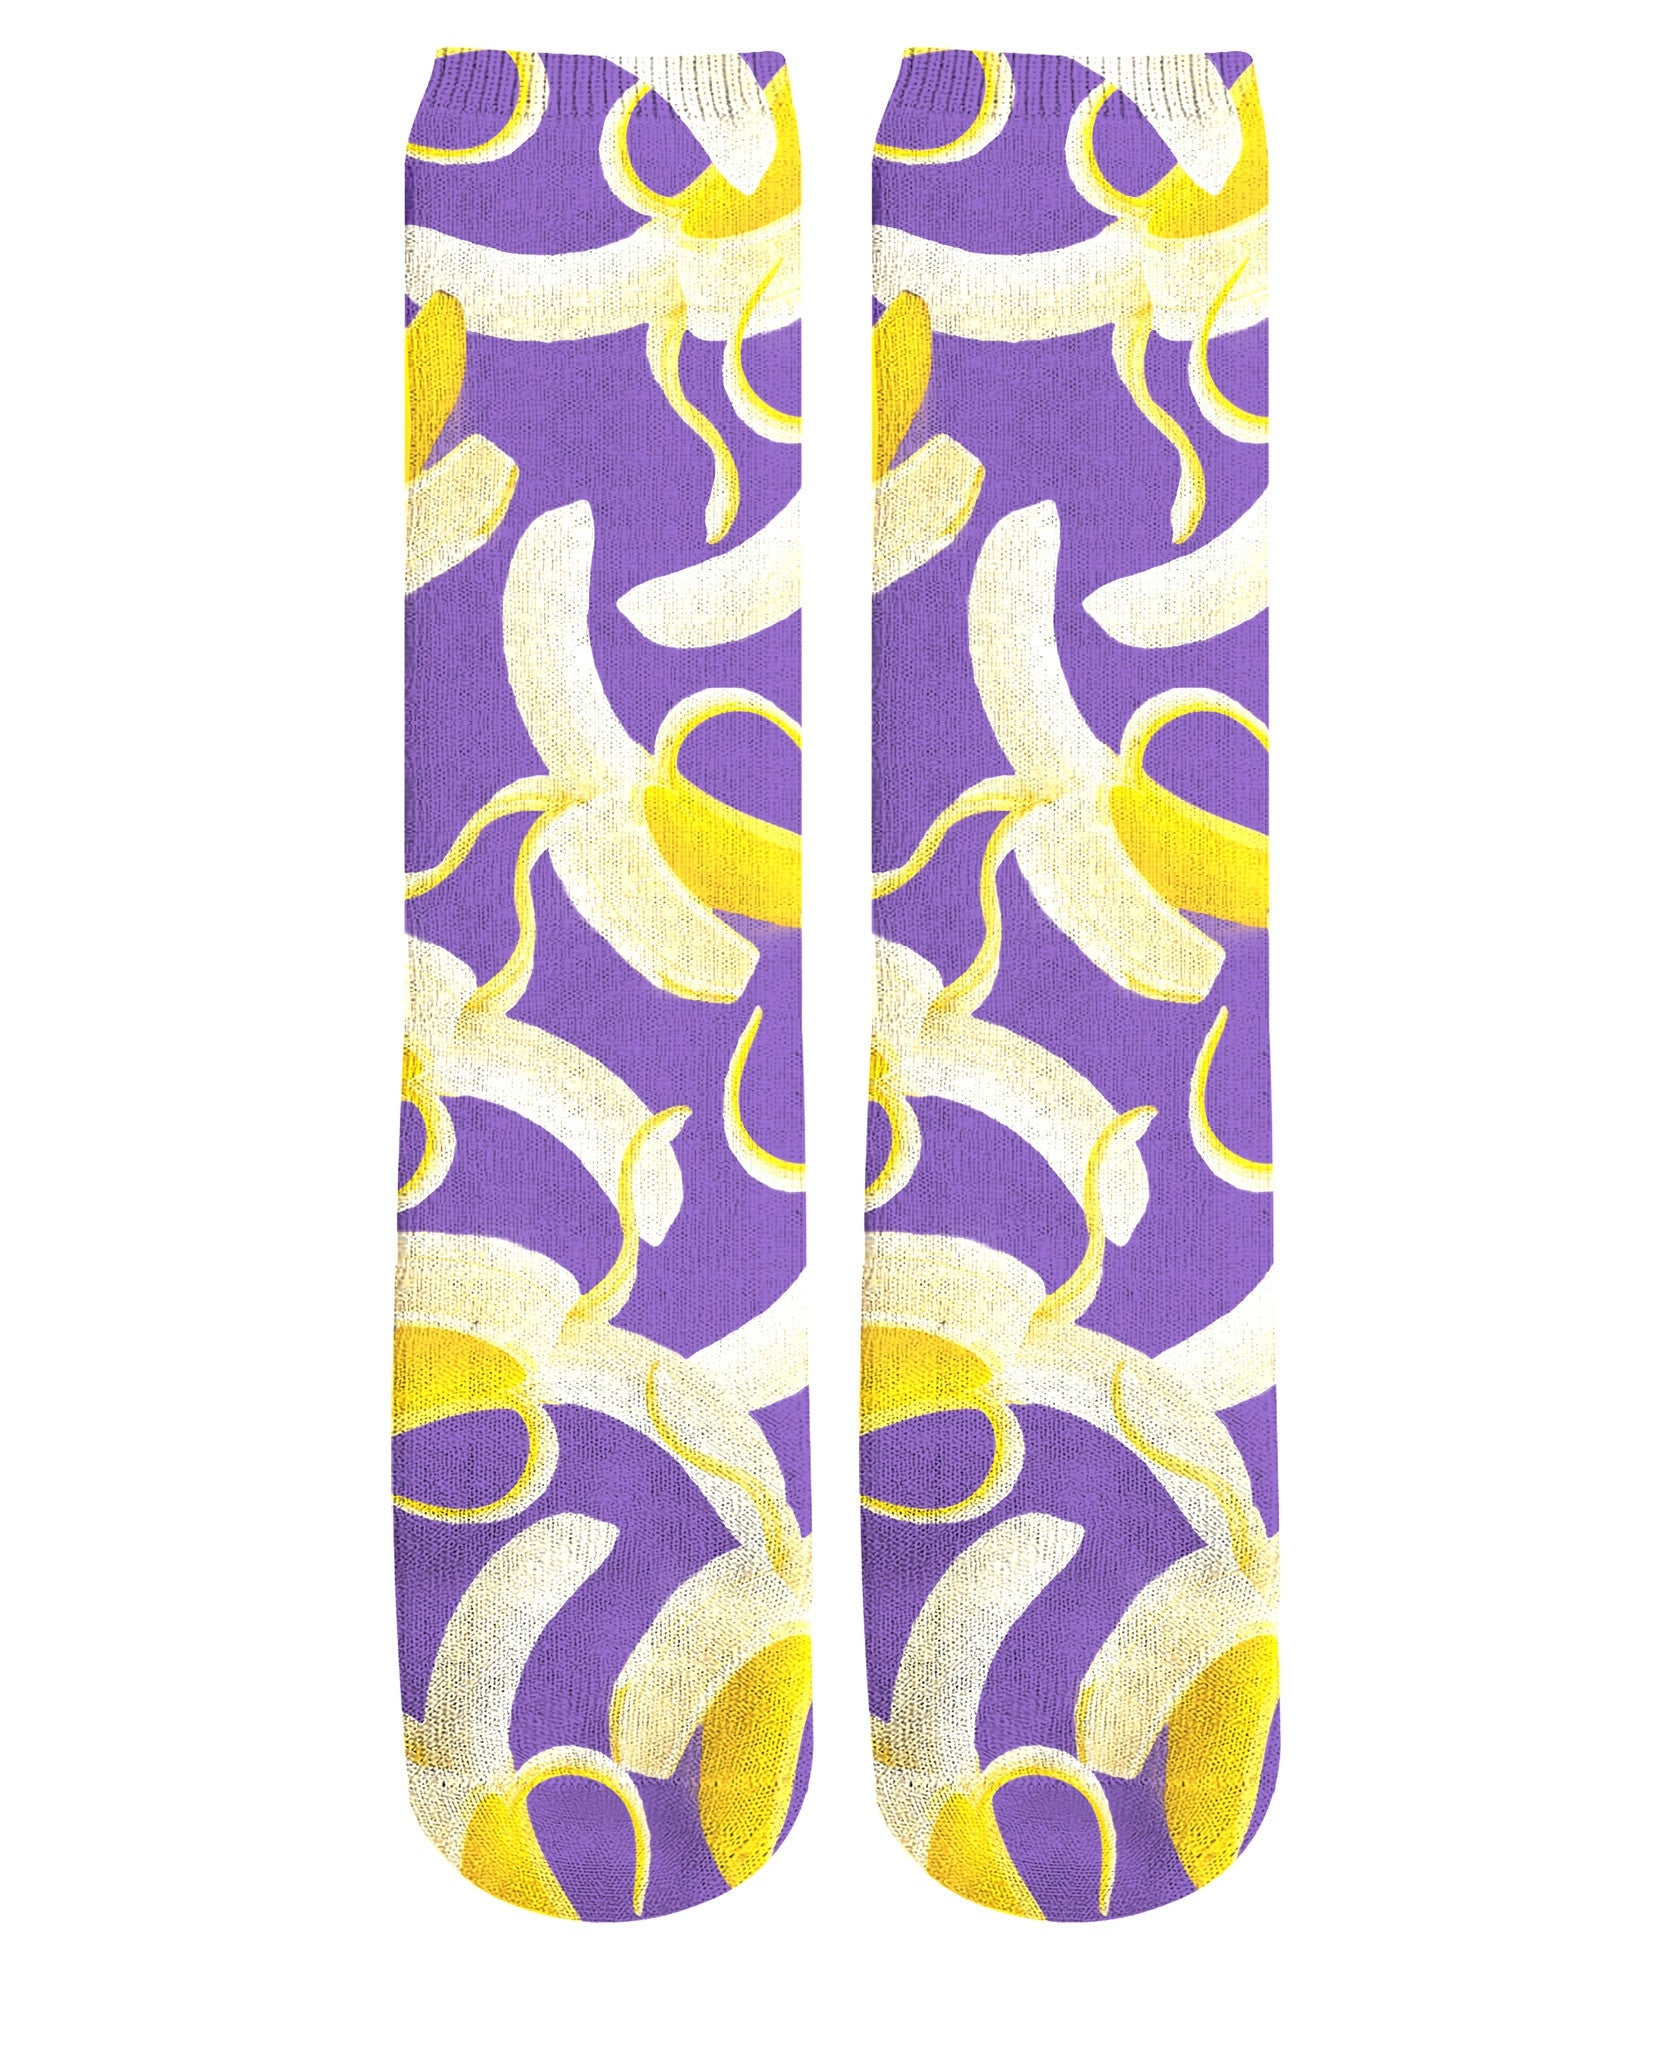 Banana Knee High Socks